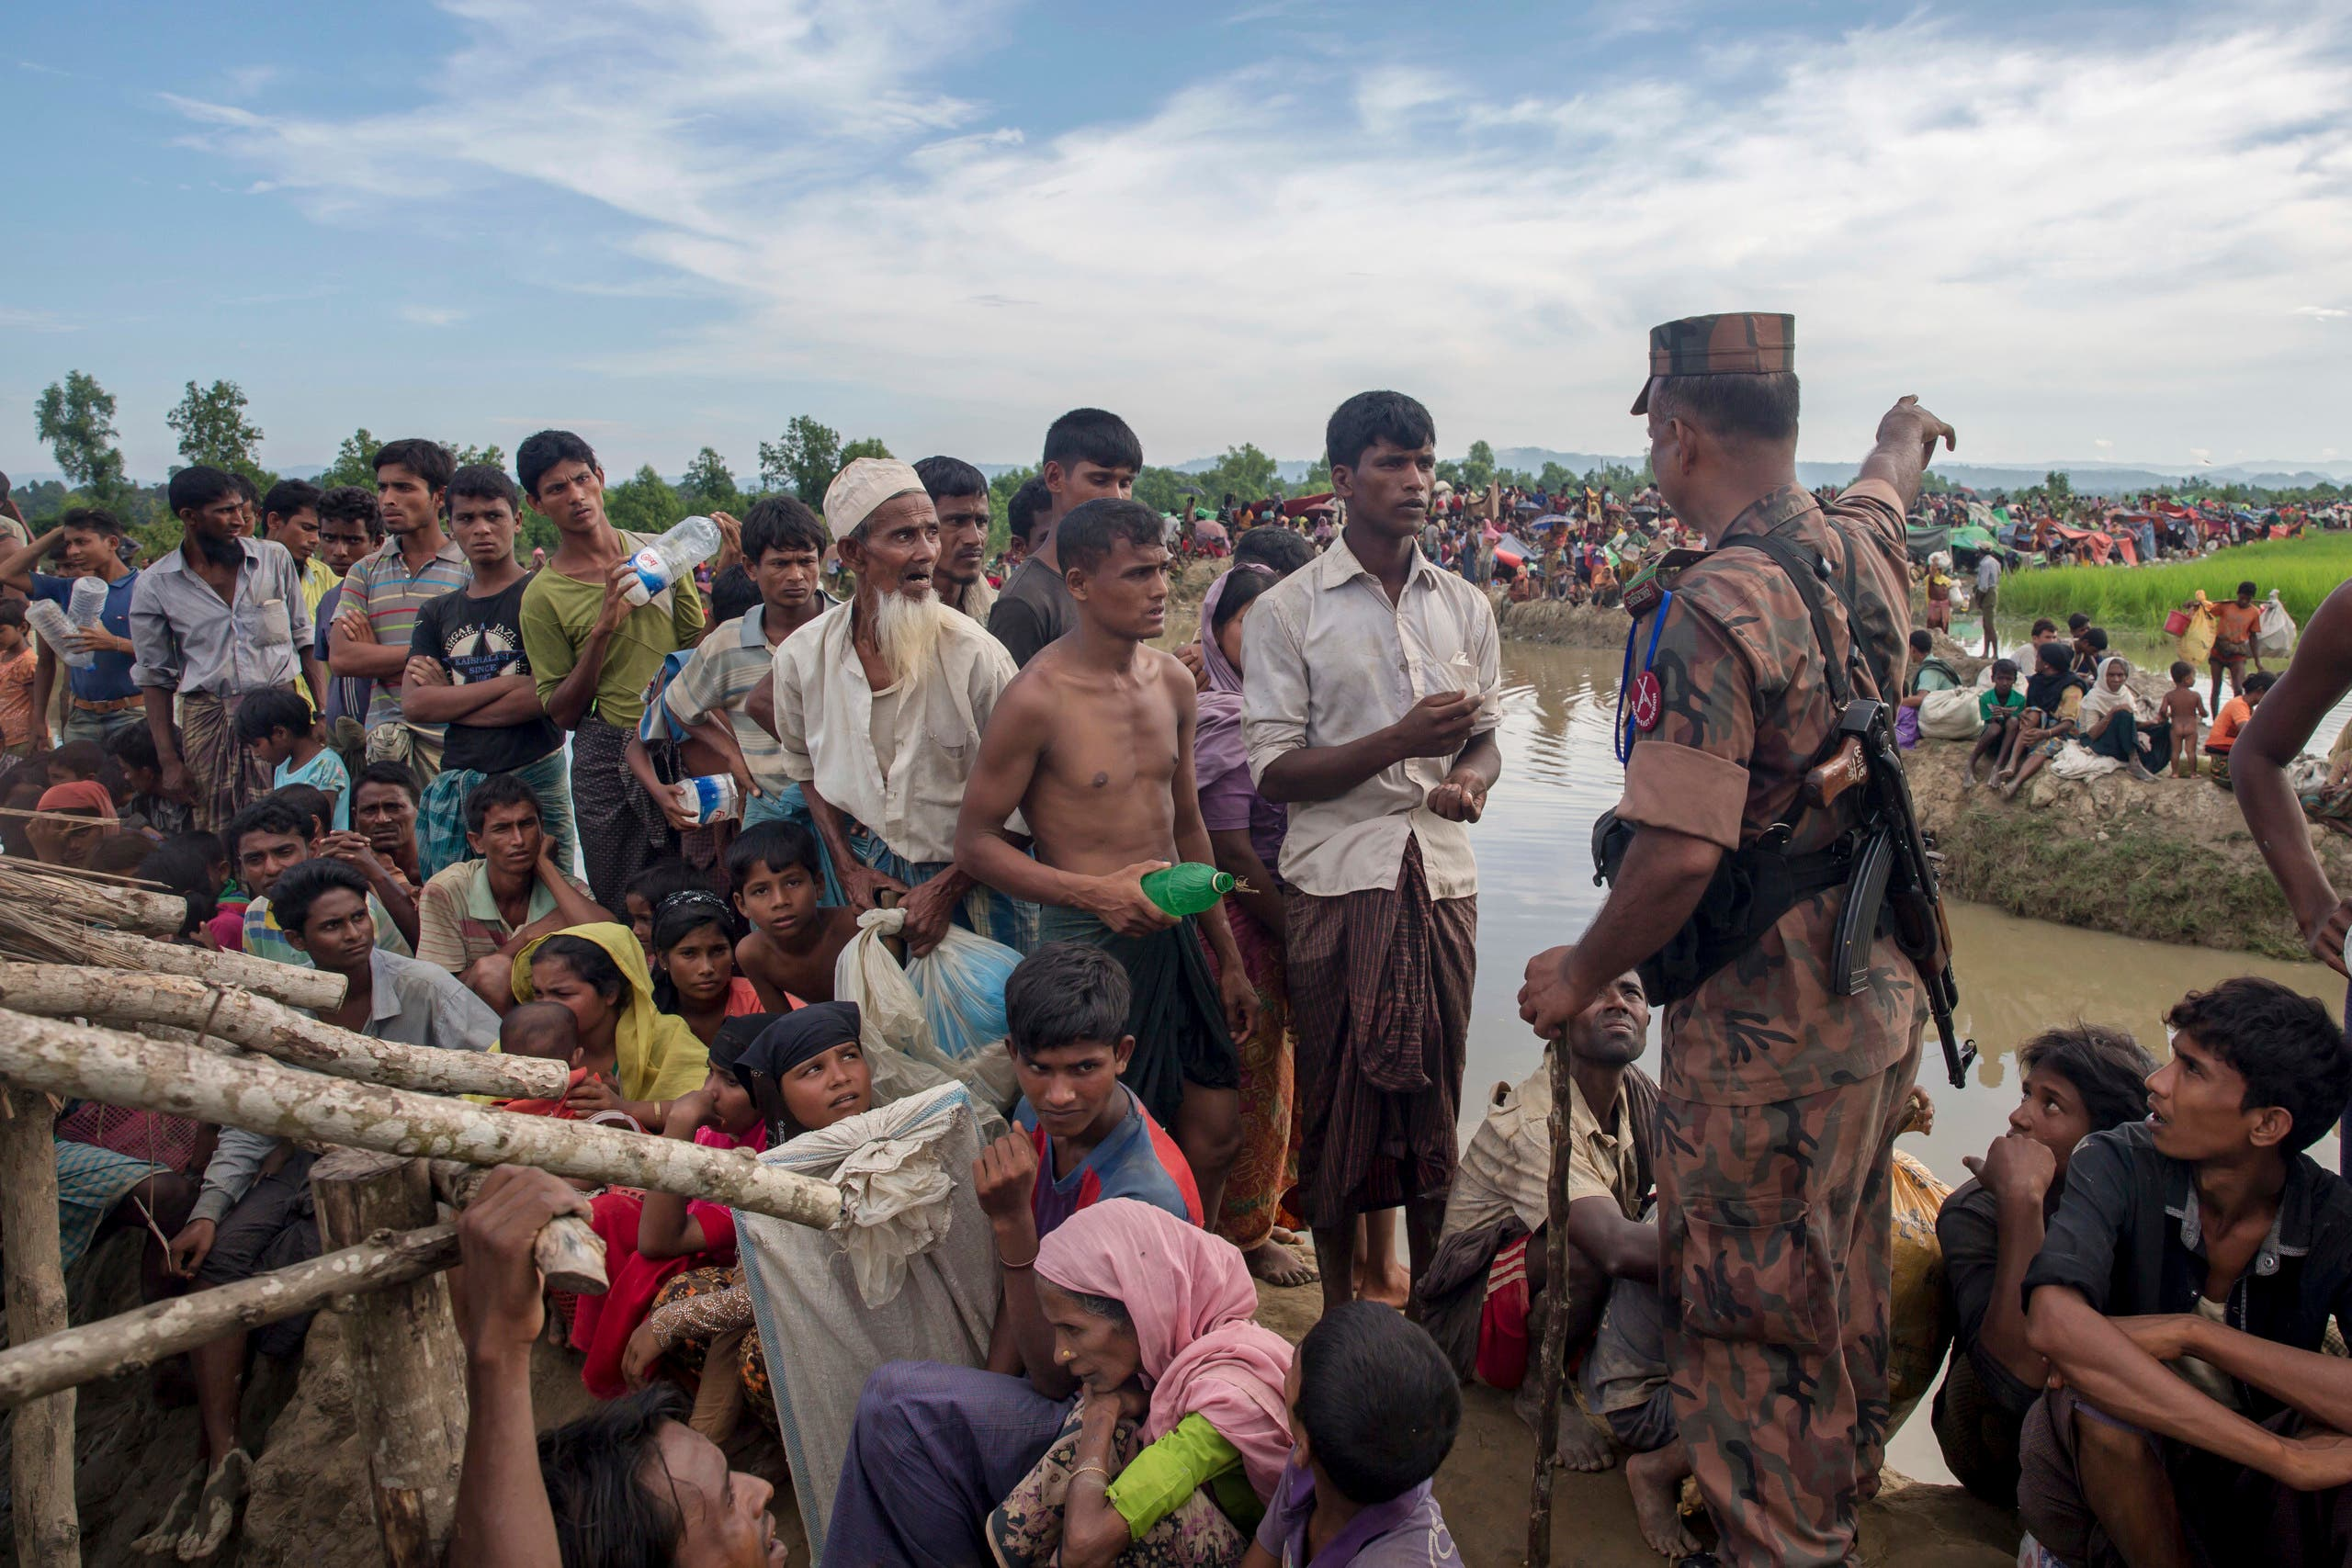 Thousands more Rohingya Muslims are fleeing large-scale violence and persecution in Myanmar and crossing into Bangladesh. (AP)